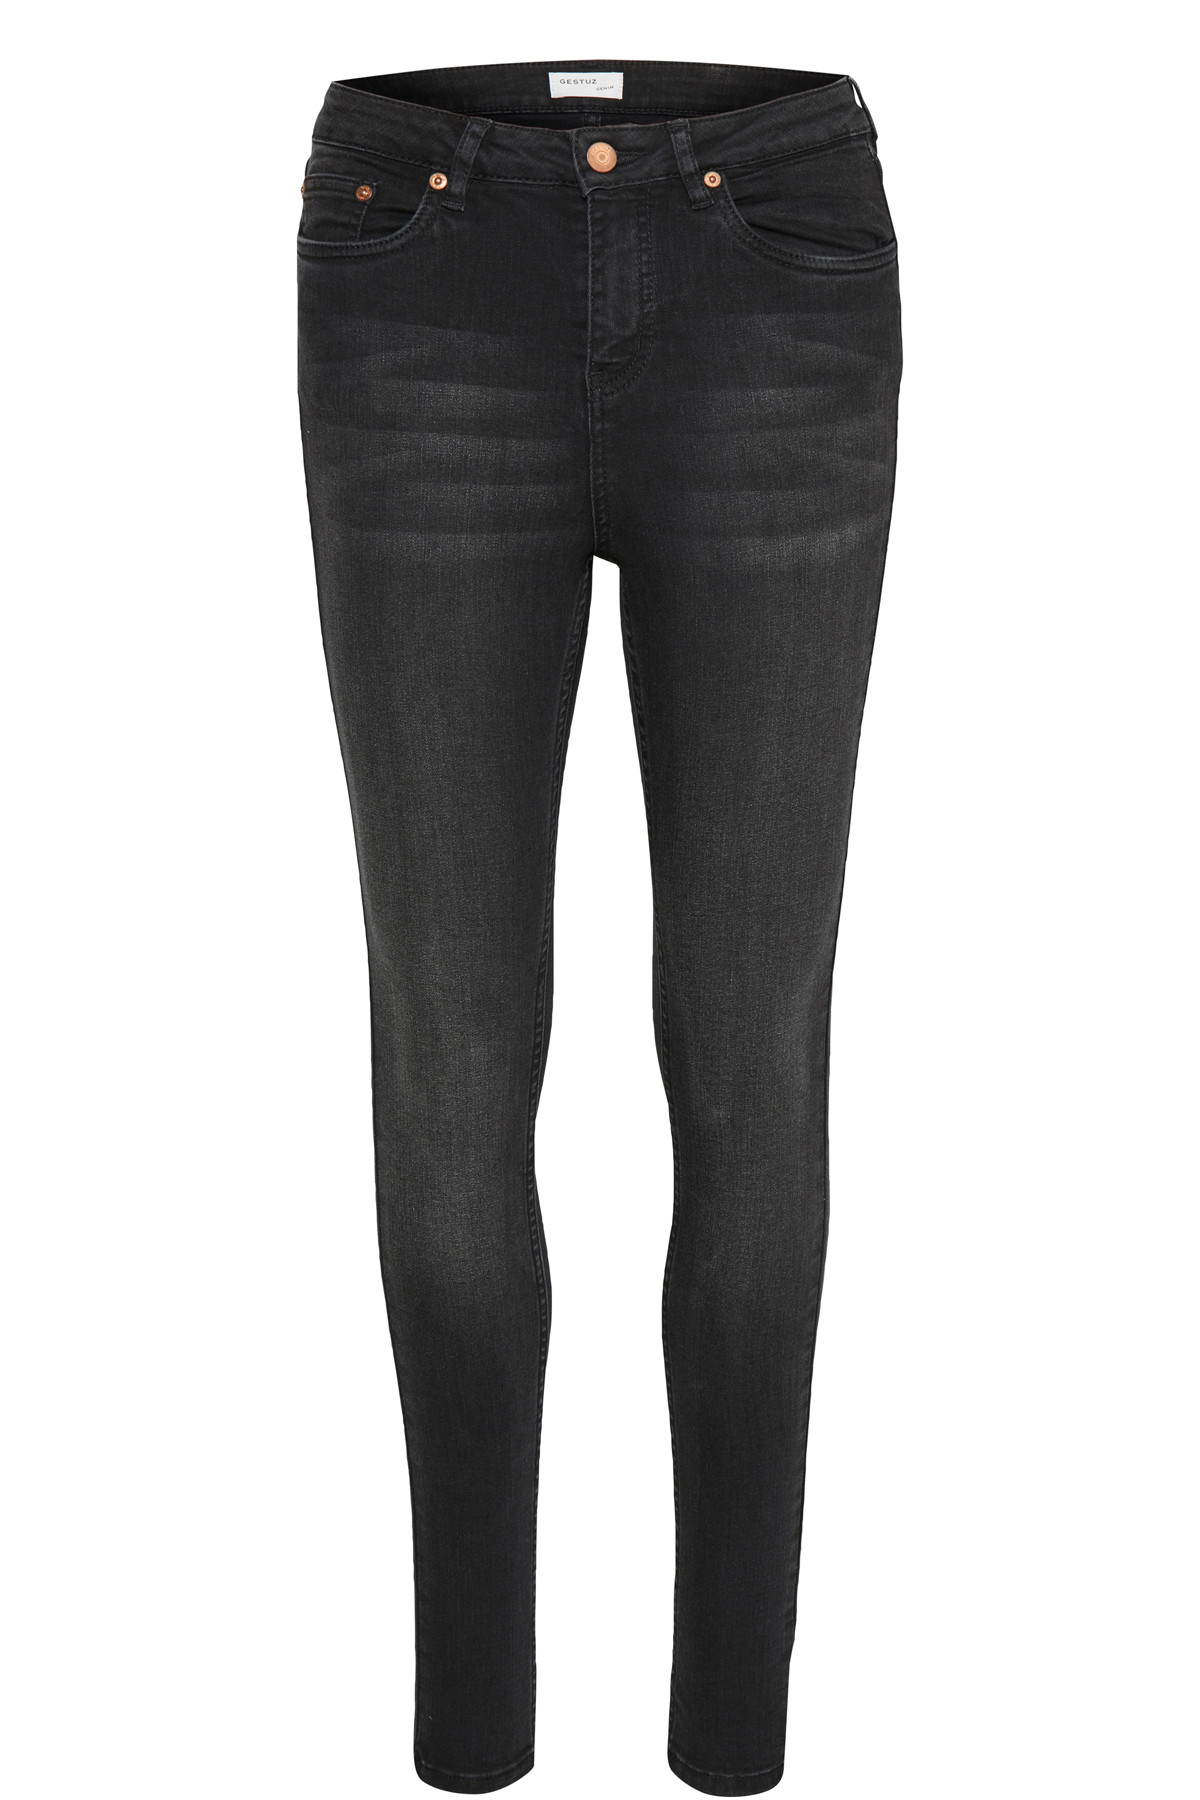 "Image of   GESTUZ EMILY JEANS 10900068 (Charcoal Grey 90899, ""32"", 27)"